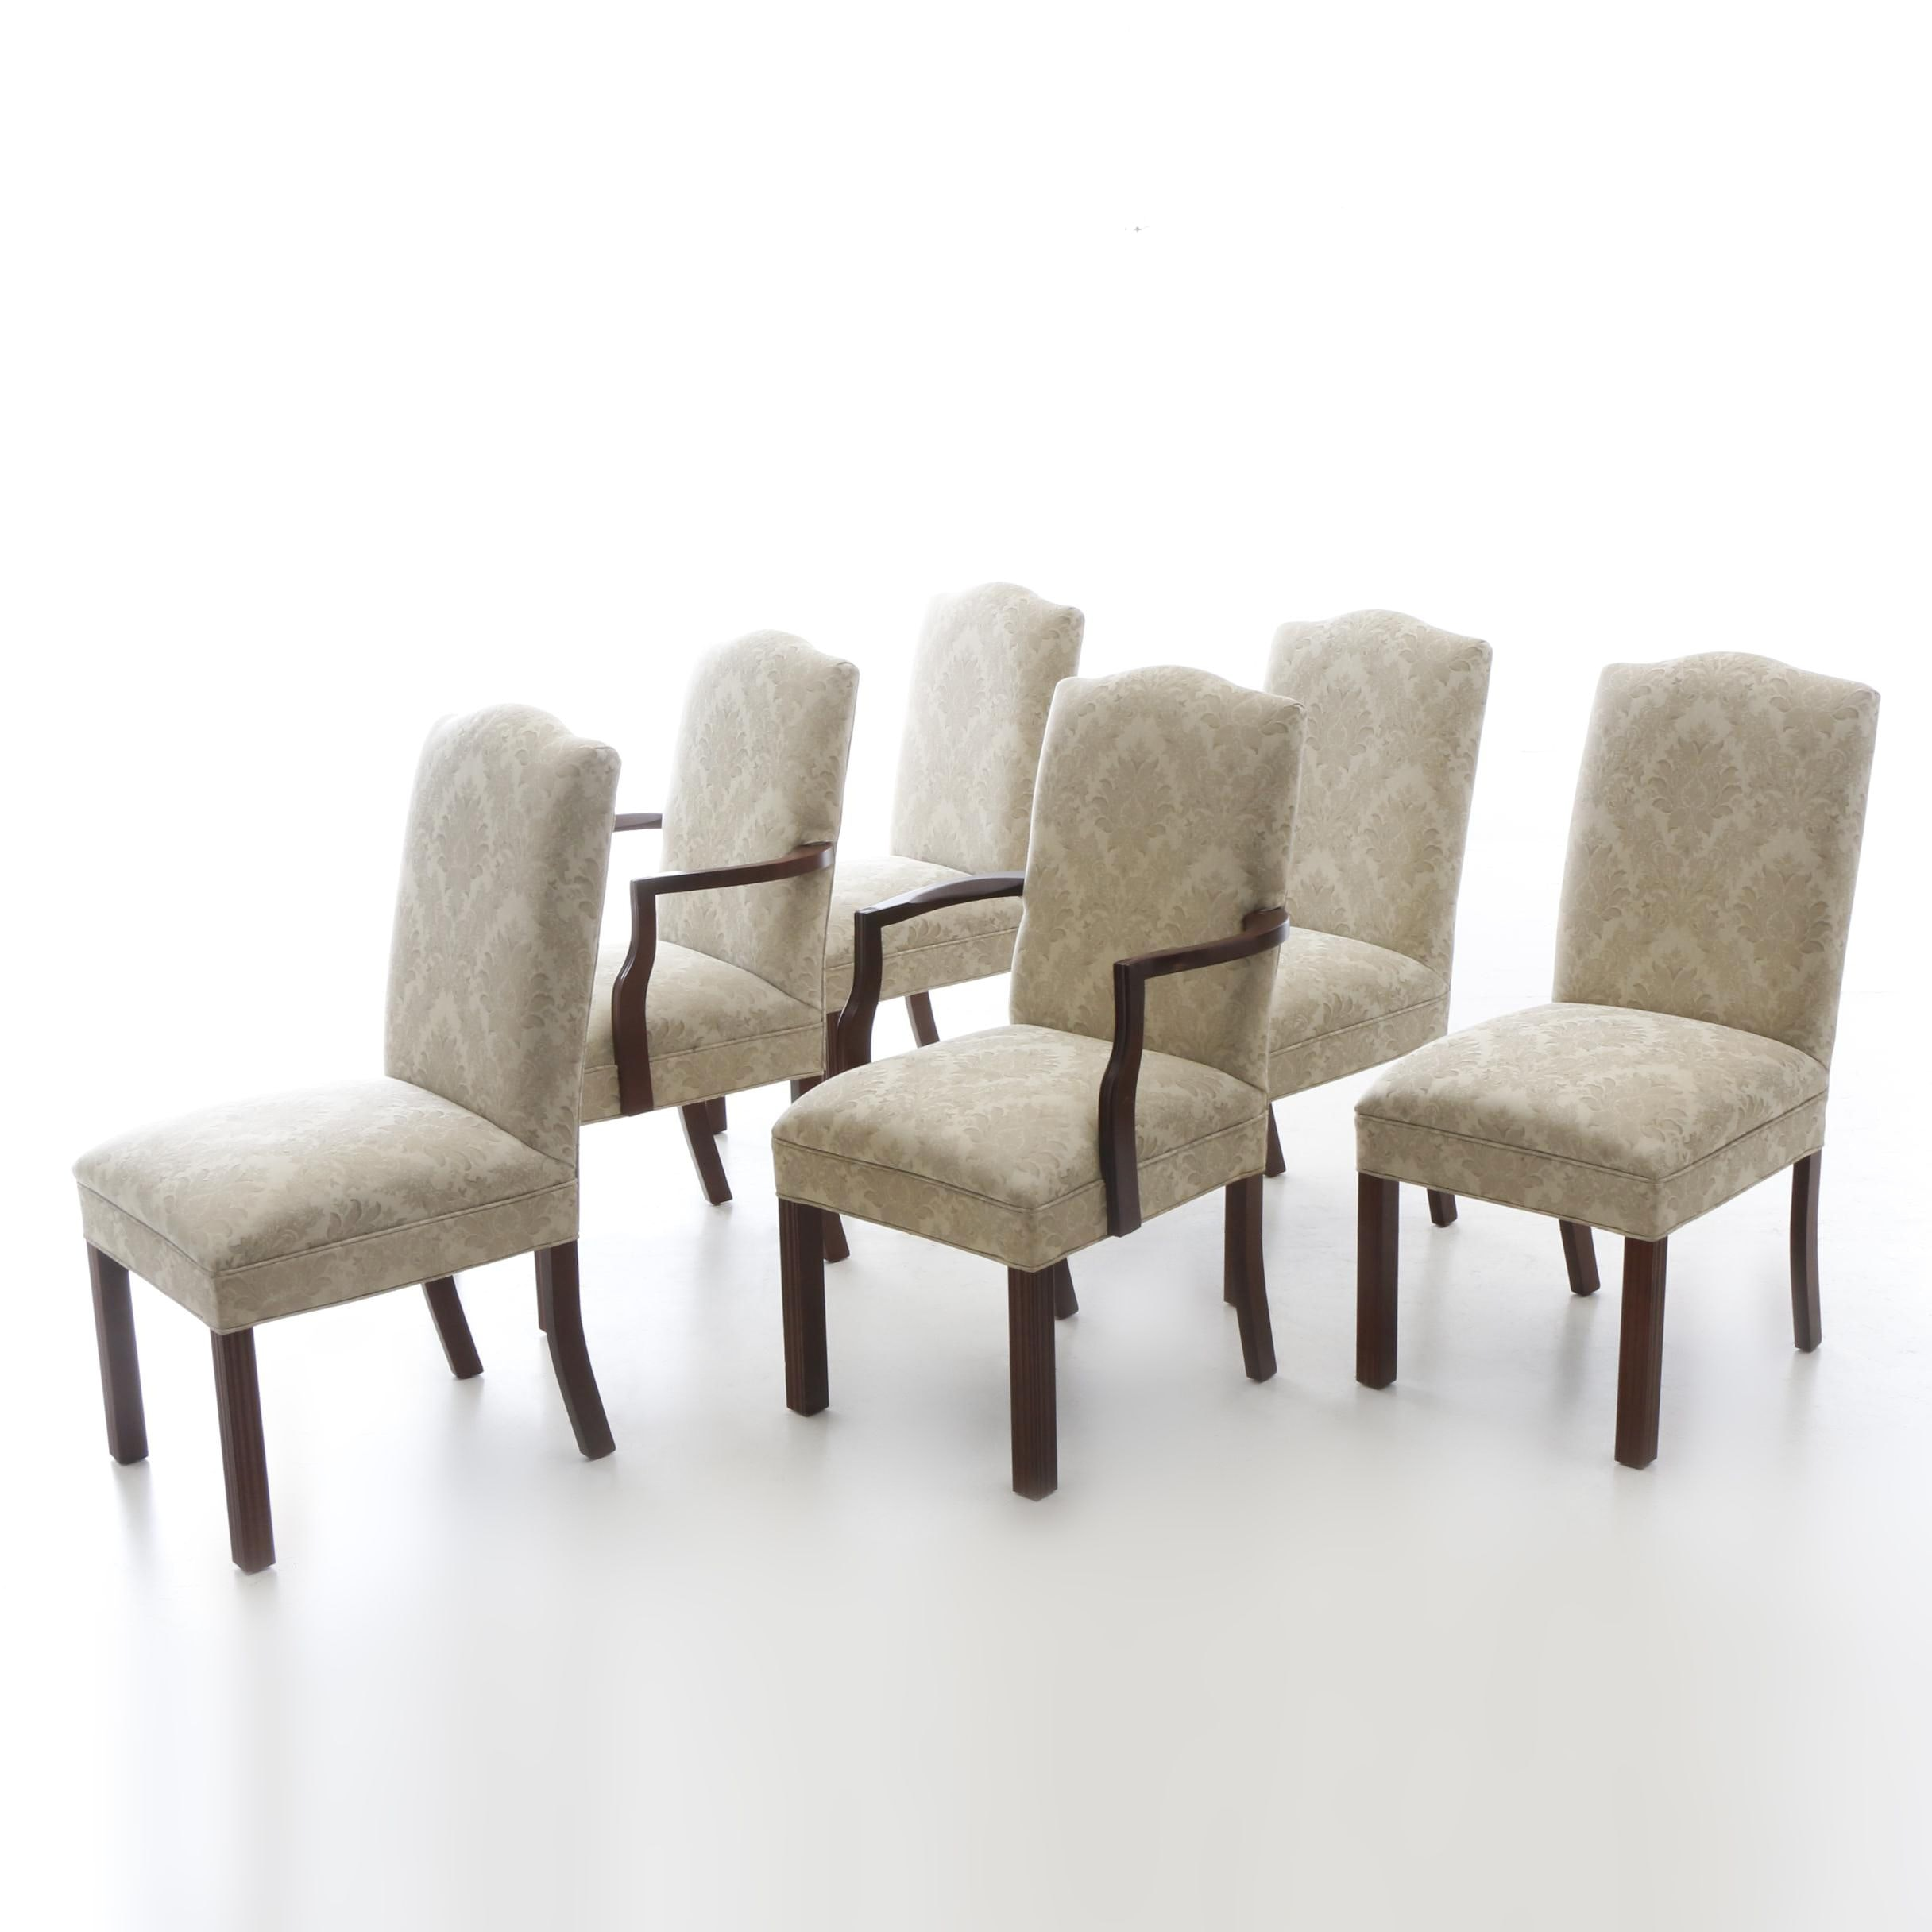 Damask Upholstered Chairs by Design Line